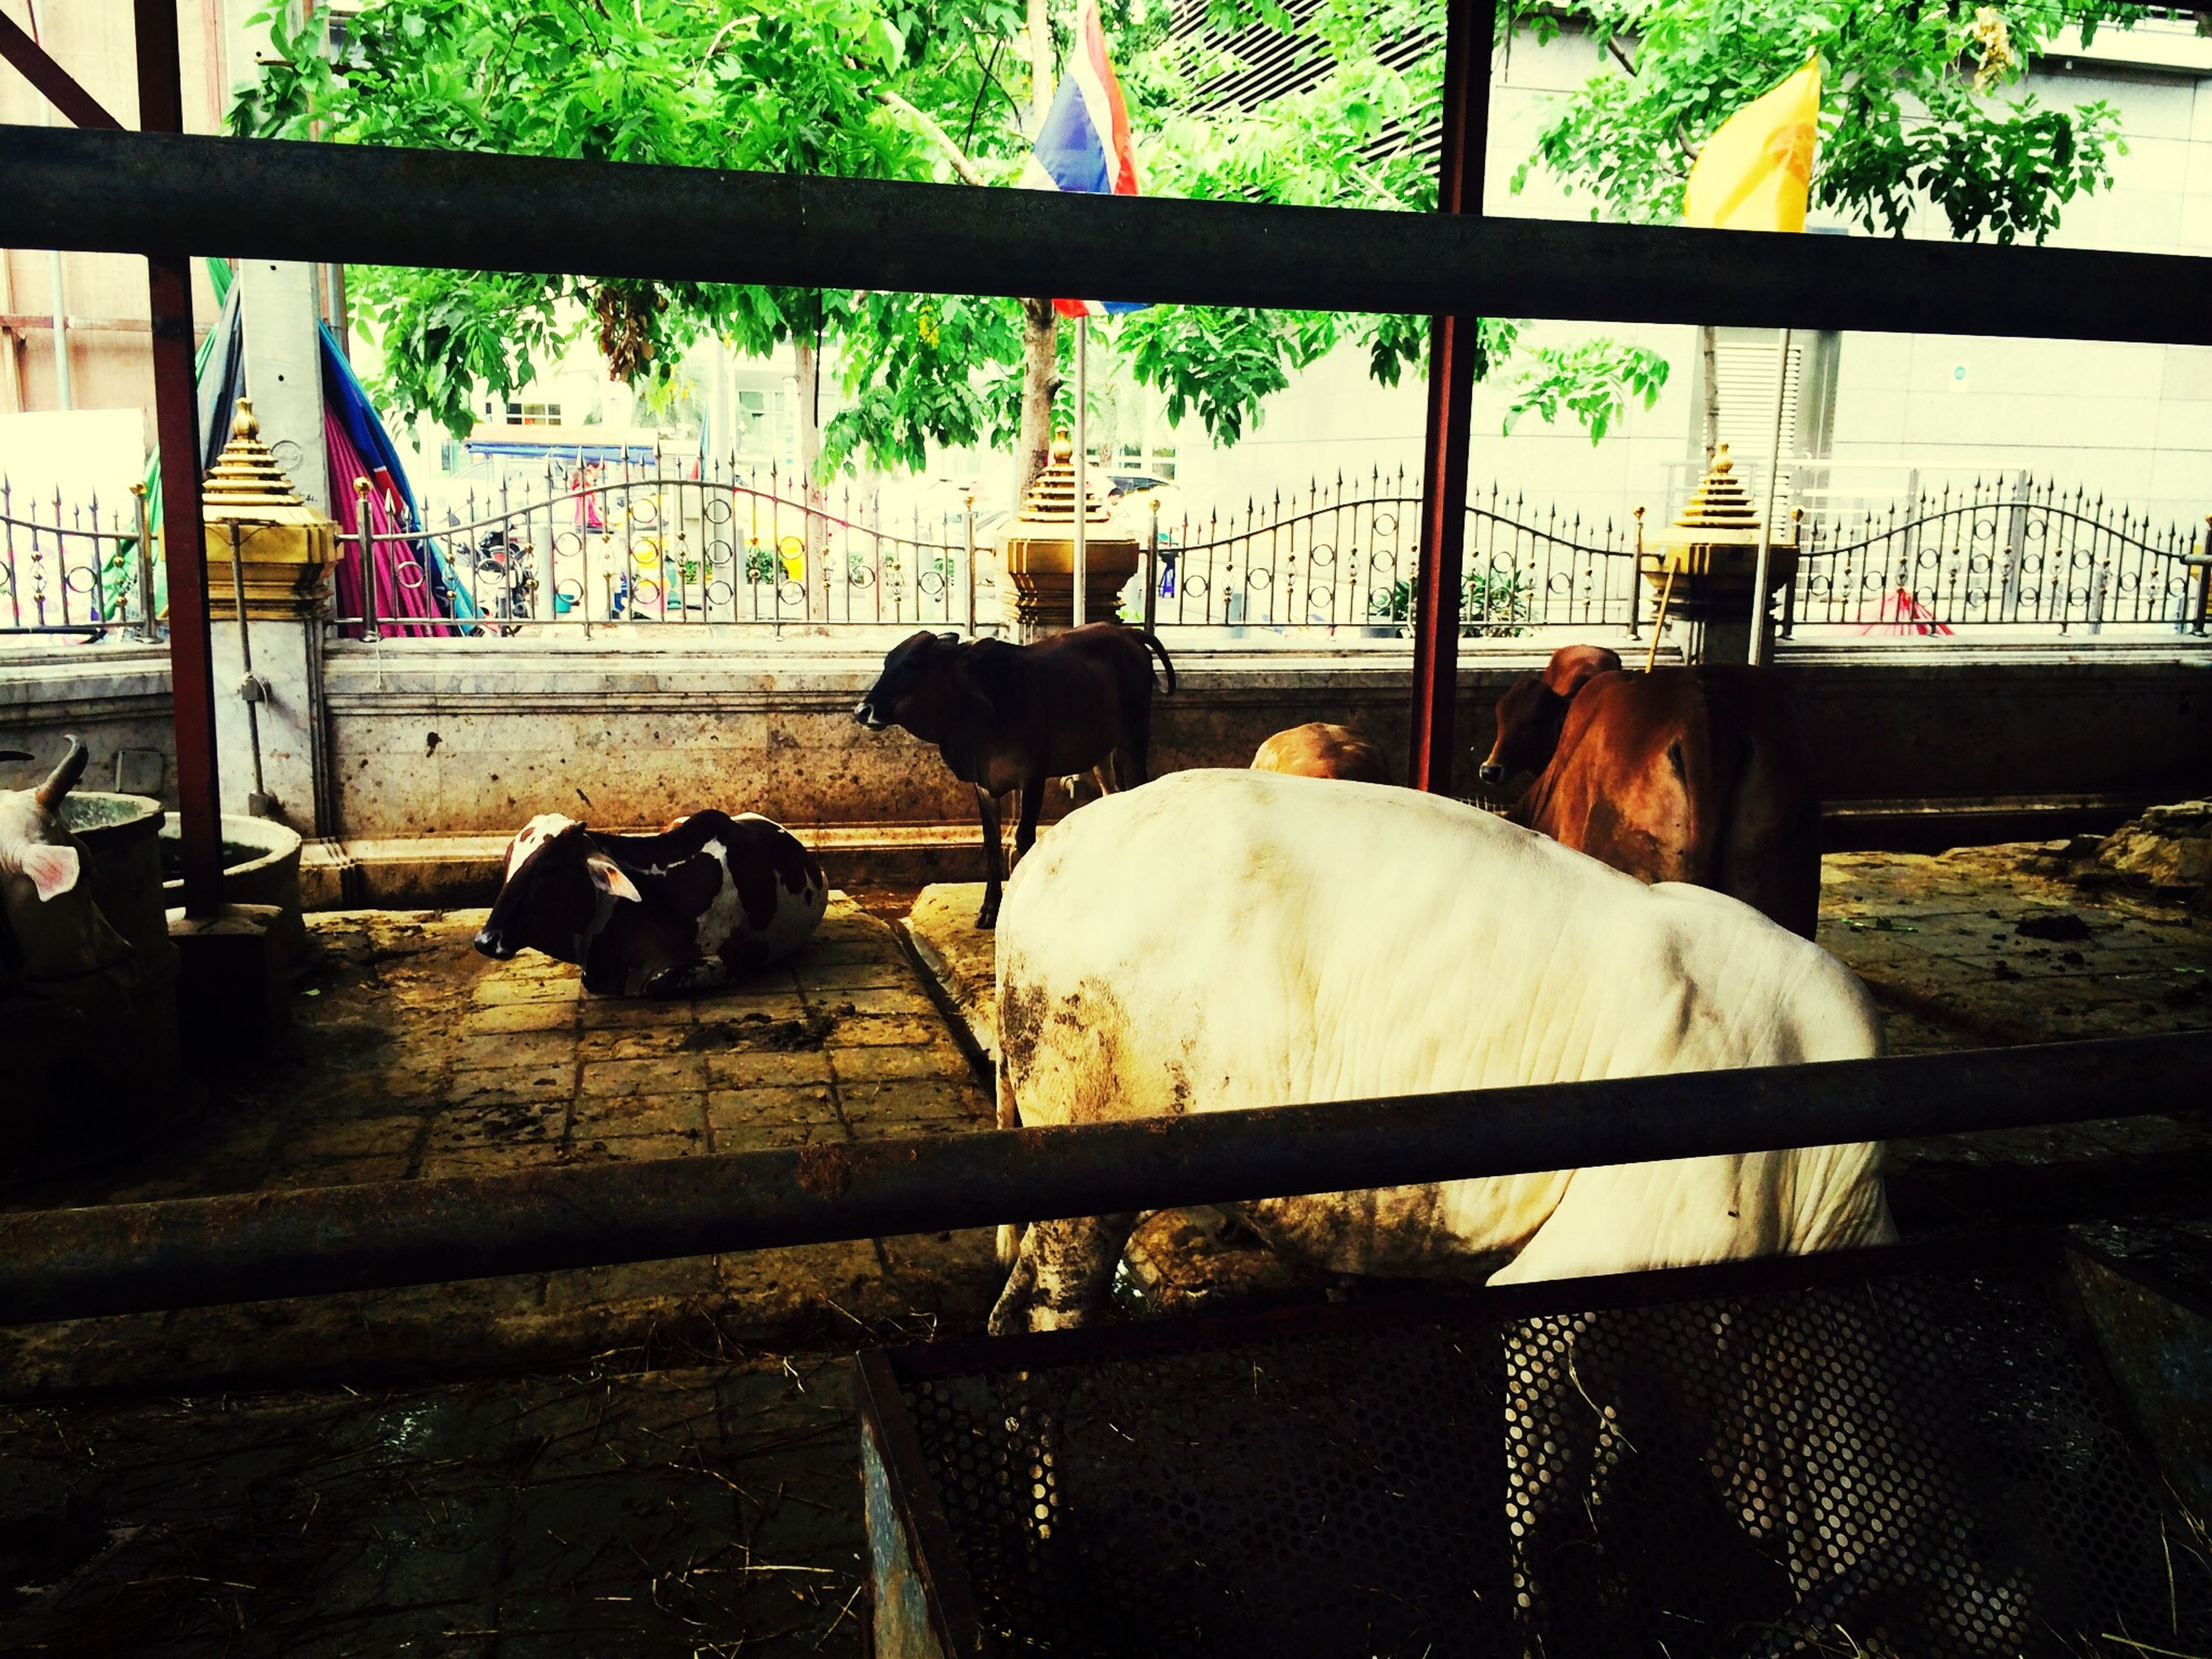 animal themes, domestic animals, mammal, livestock, one animal, two animals, pets, animals in captivity, fence, animal pen, zoology, cage, built structure, cow, relaxation, day, railing, indoors, no people, animal